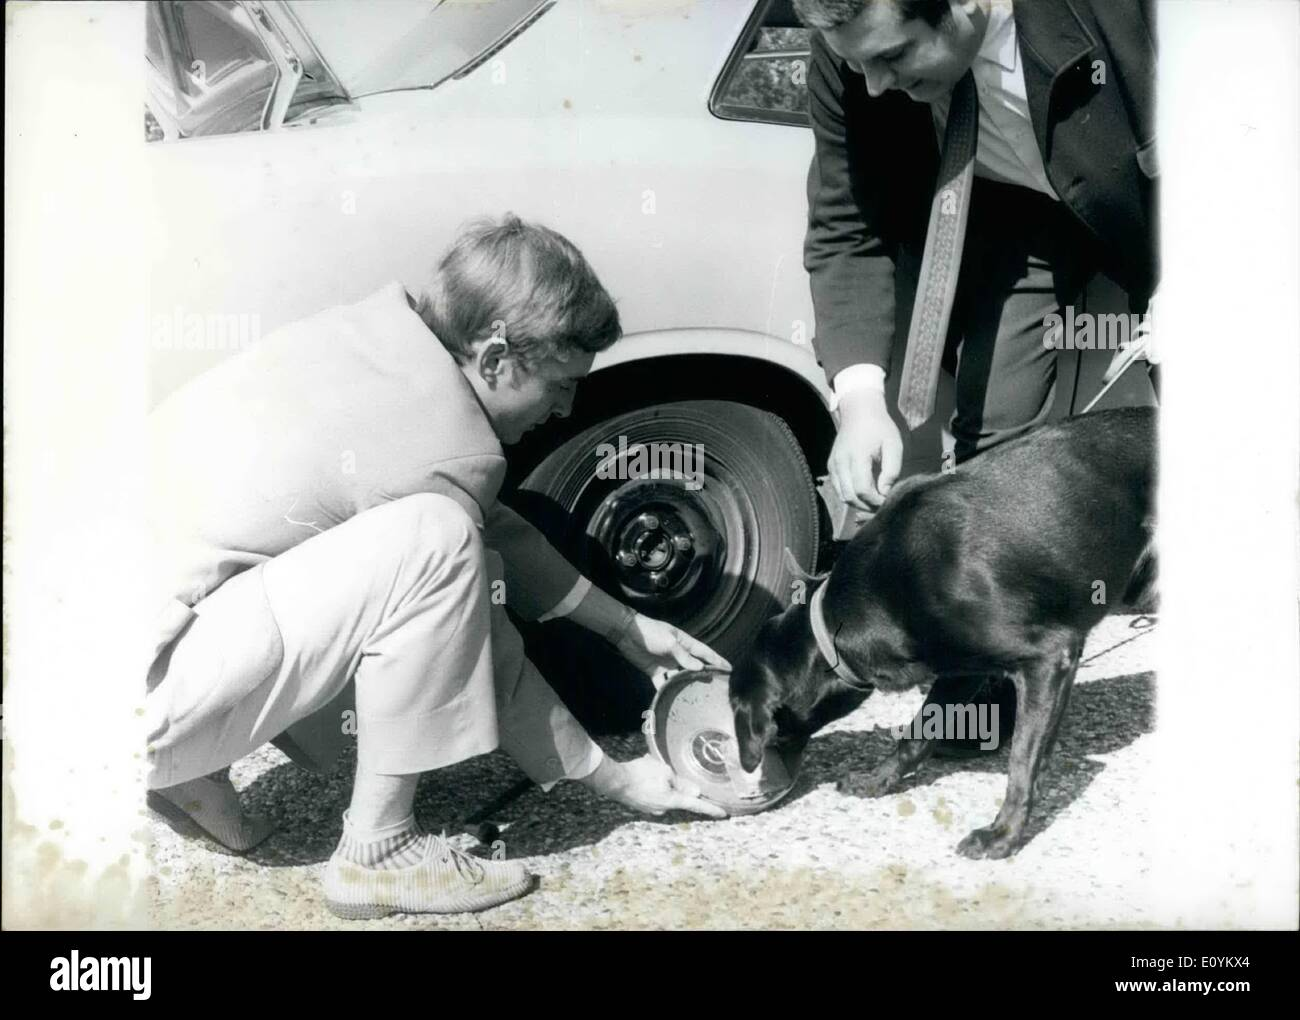 Sep. 09, 1970 - Dog noses 8,5 kilogram of Hashish: The ''drug-dog'' Scotty has given proof of his nosing ability: The police dog ''Scotty'' (Frankfurt), prepared for discovering drug hiding places, has helped the criminal investigation to a ''good find''. According to police reports 8,5 kg of hashish and almost 1000 LSD-''trips'' could be secured which were found by searching a public house in the station quarter. Consequently a presentation of this splendid specimen of a dog took place at the Ministry of the Interior. - Stock Image